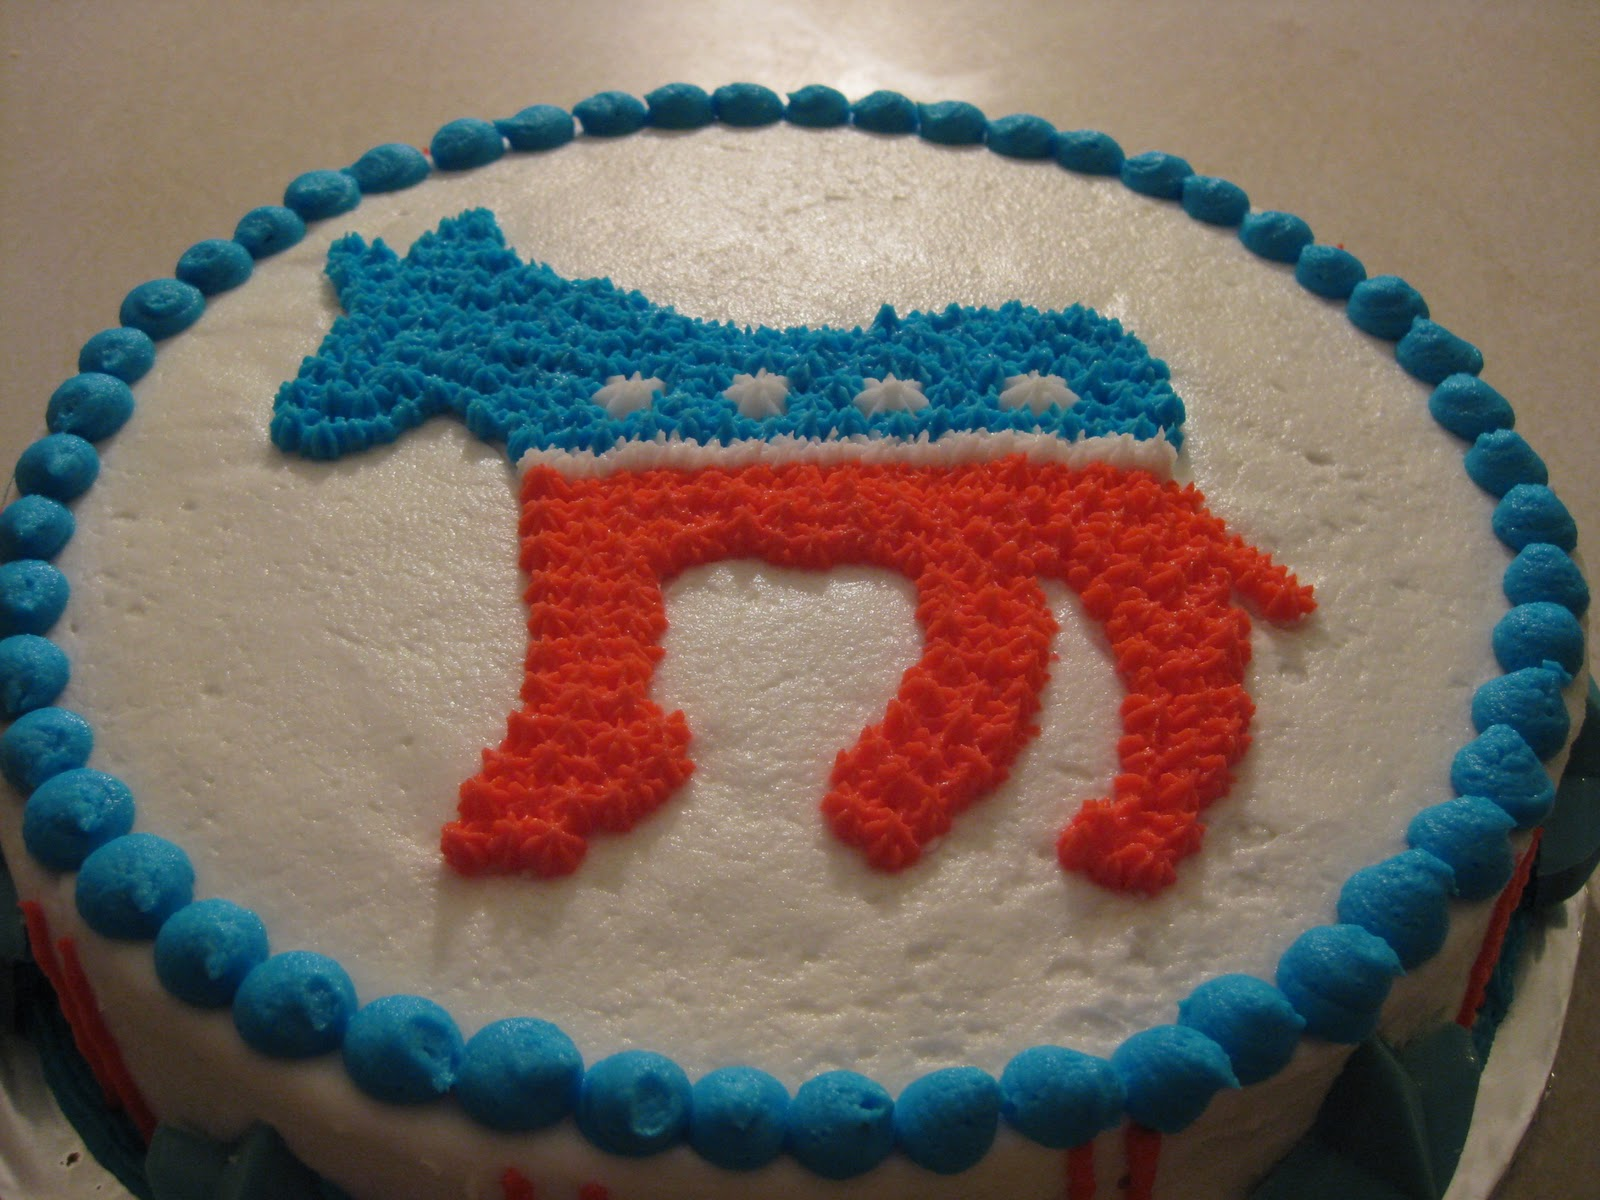 Cake Decorating Classes Near Tulsa : cake decorating classes austin tx